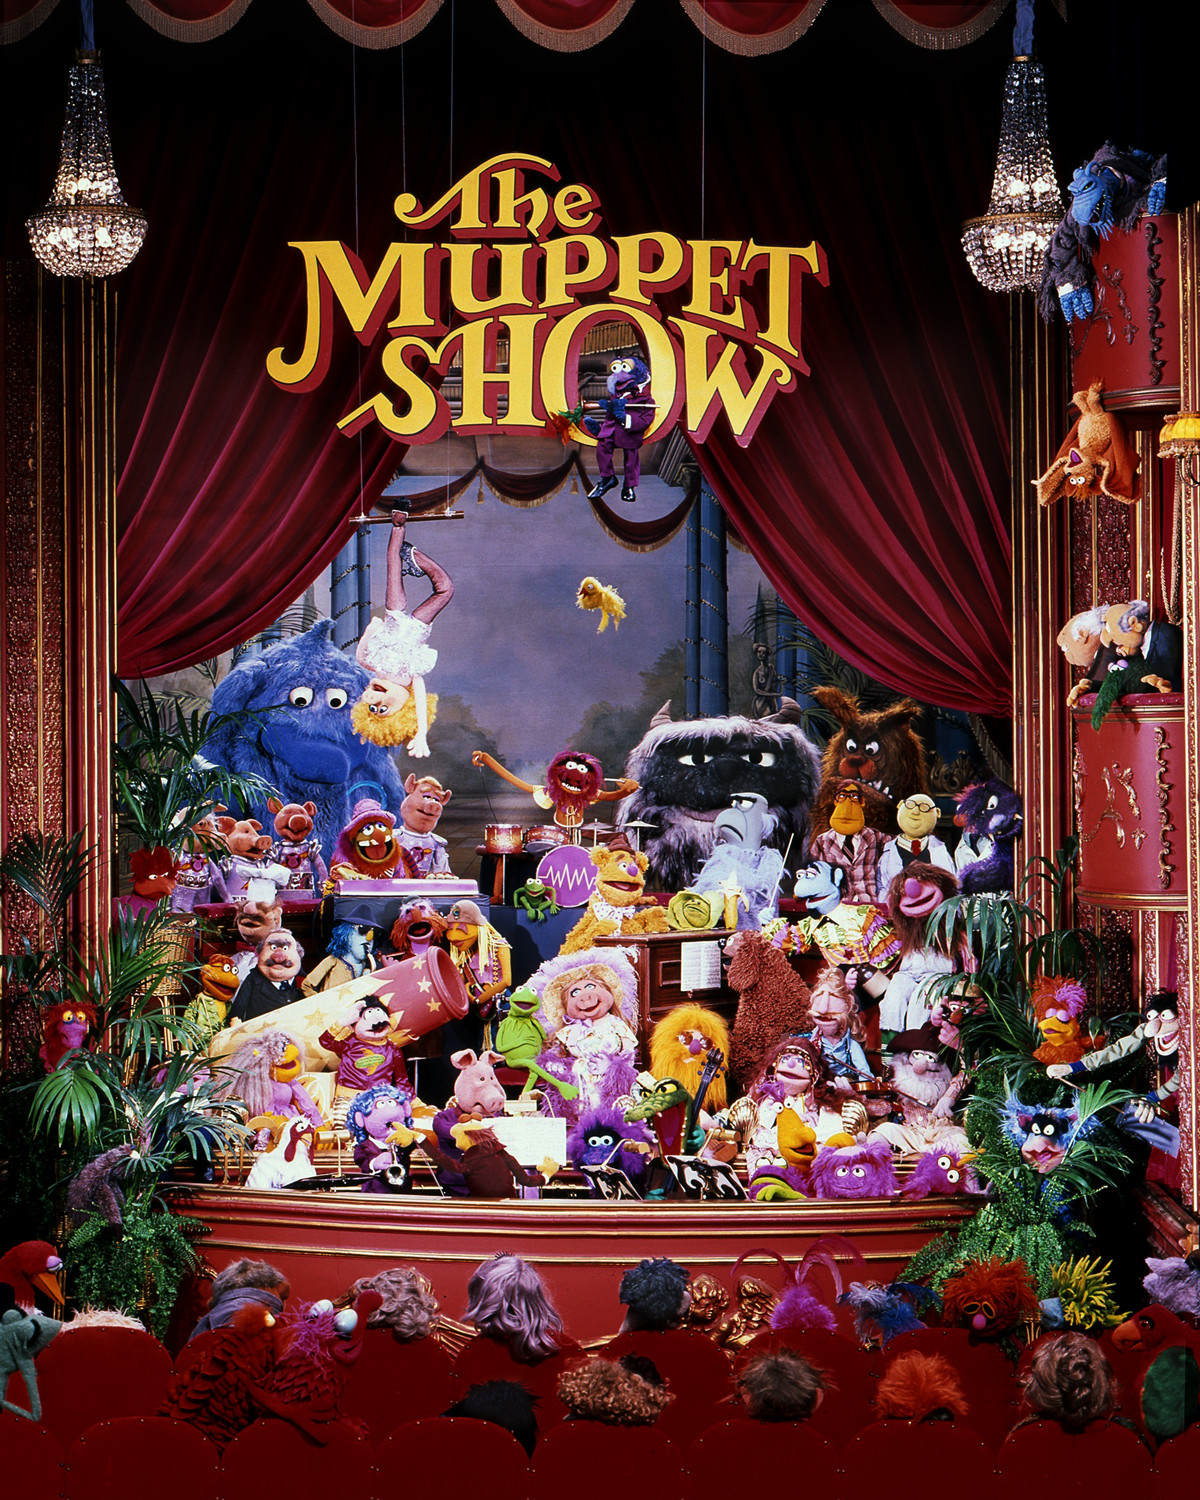 the full cast of the muppet show